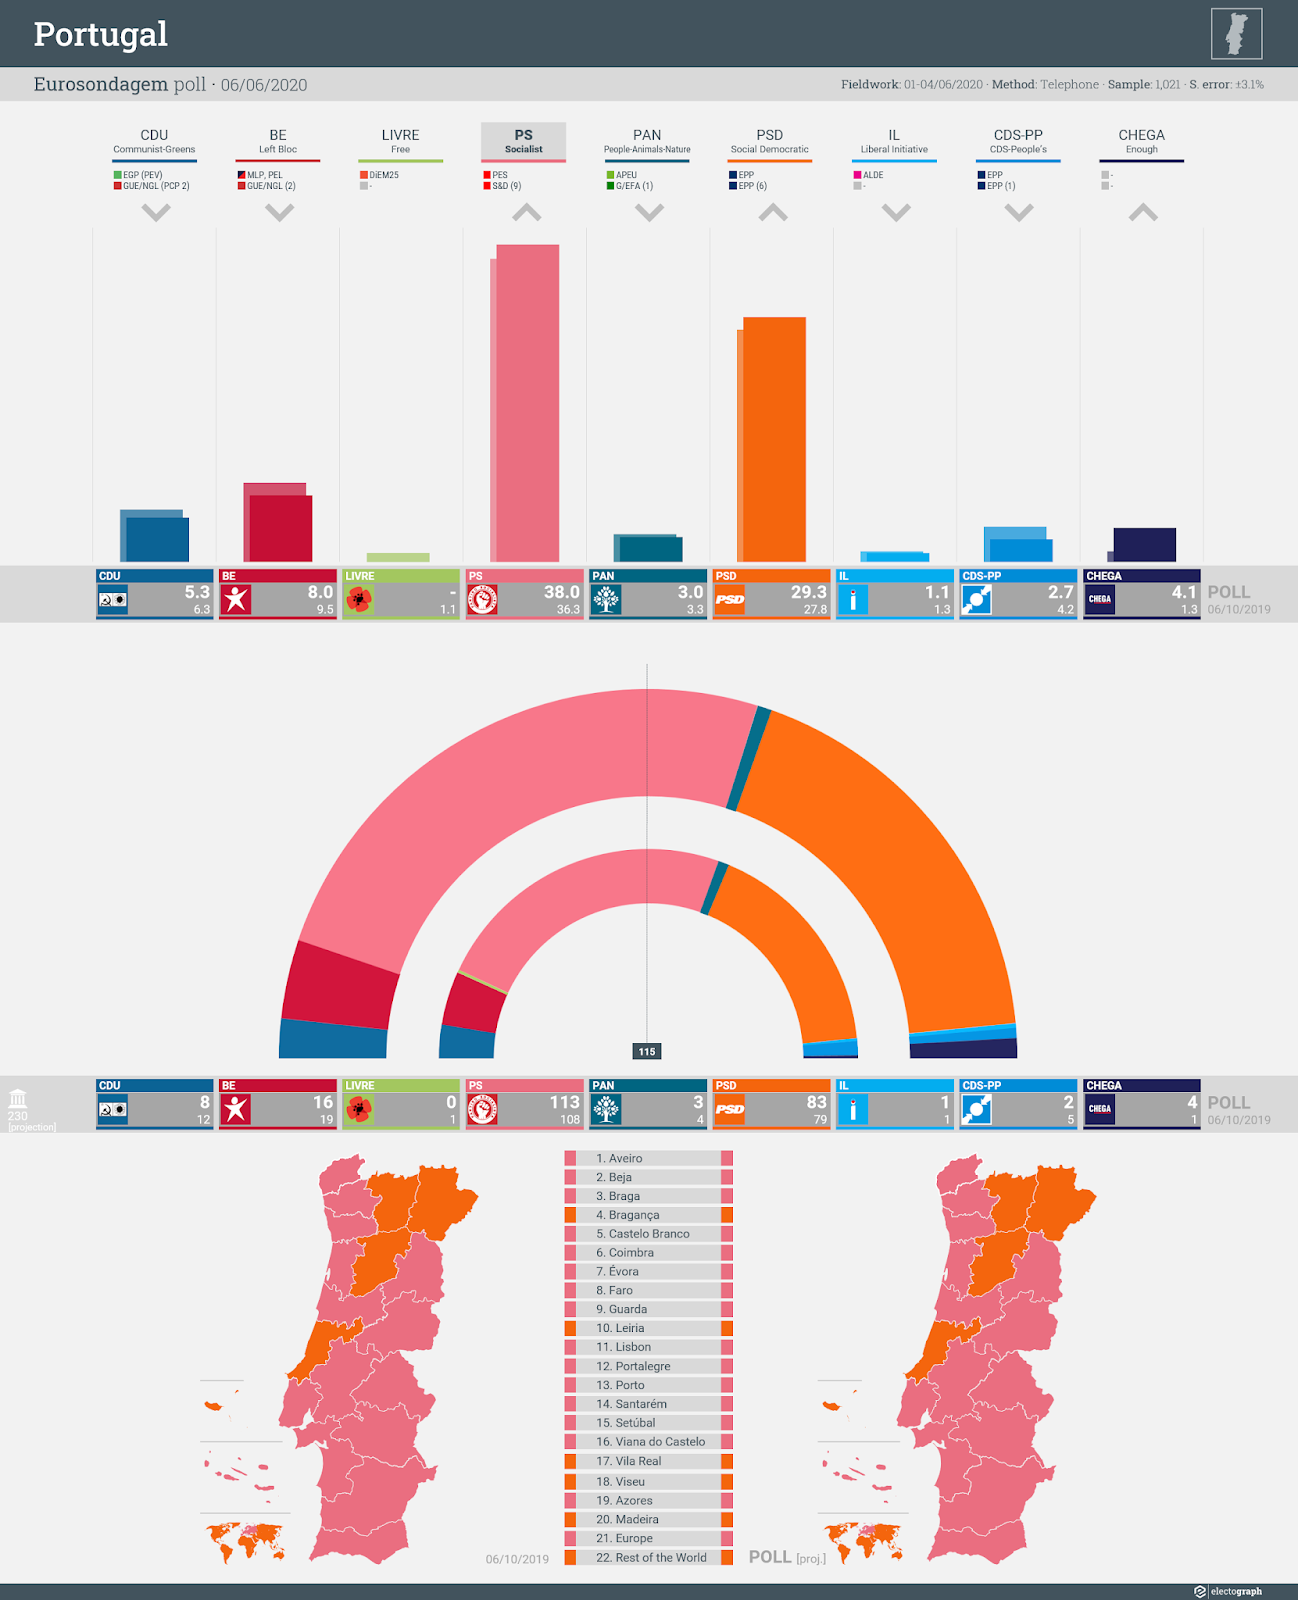 PORTUGAL: Eurosondagem poll chart, 6 June 2020